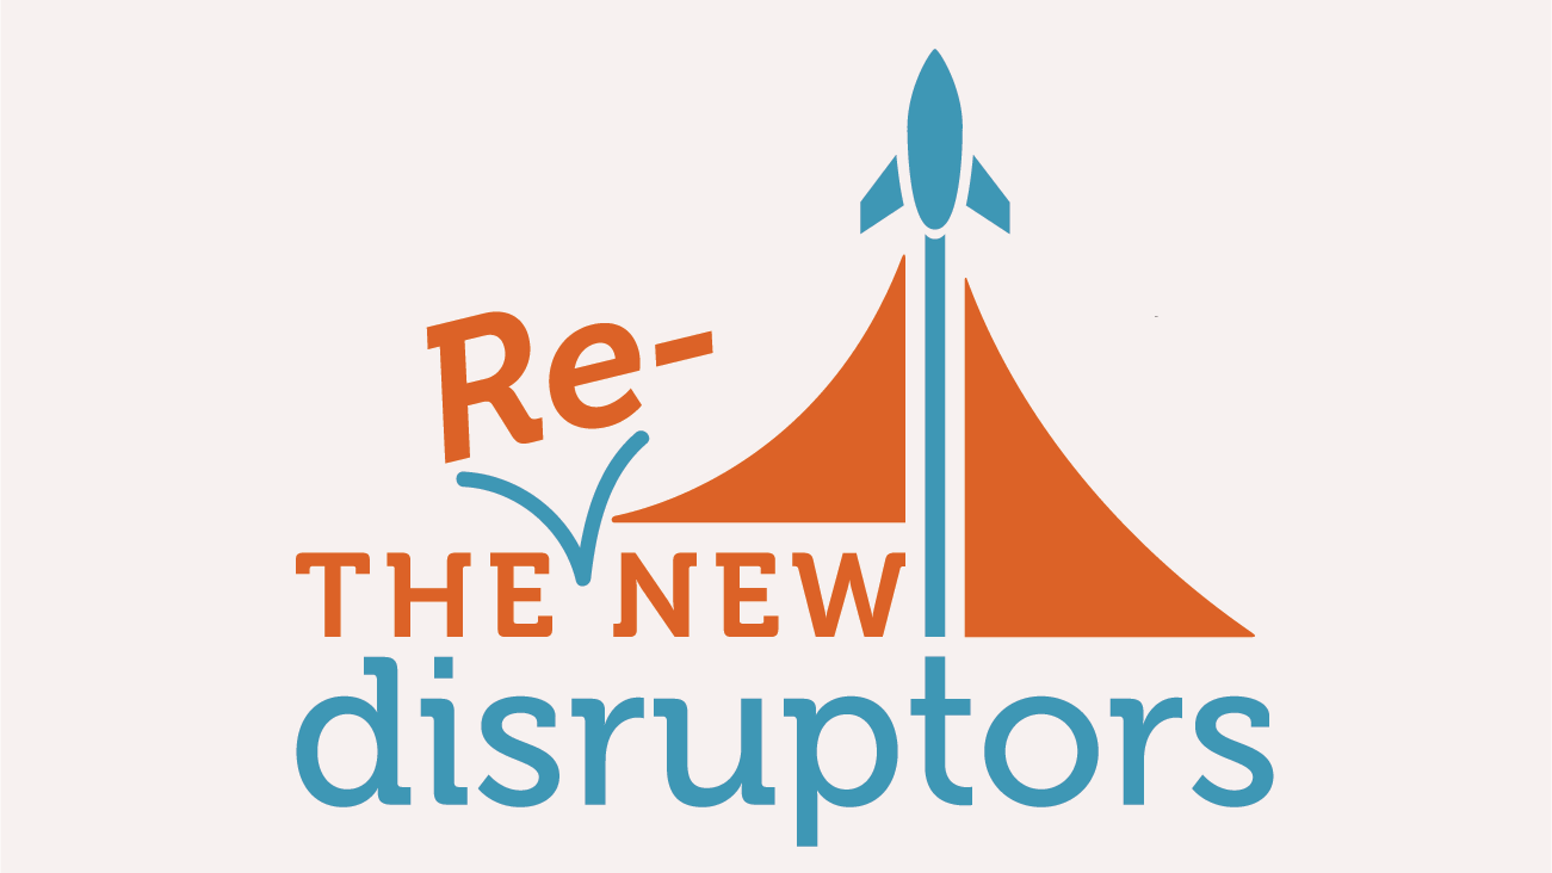 Funding a new year of The New Disruptors: a podcast about creators connecting with audiences. New episodes started August 2018!